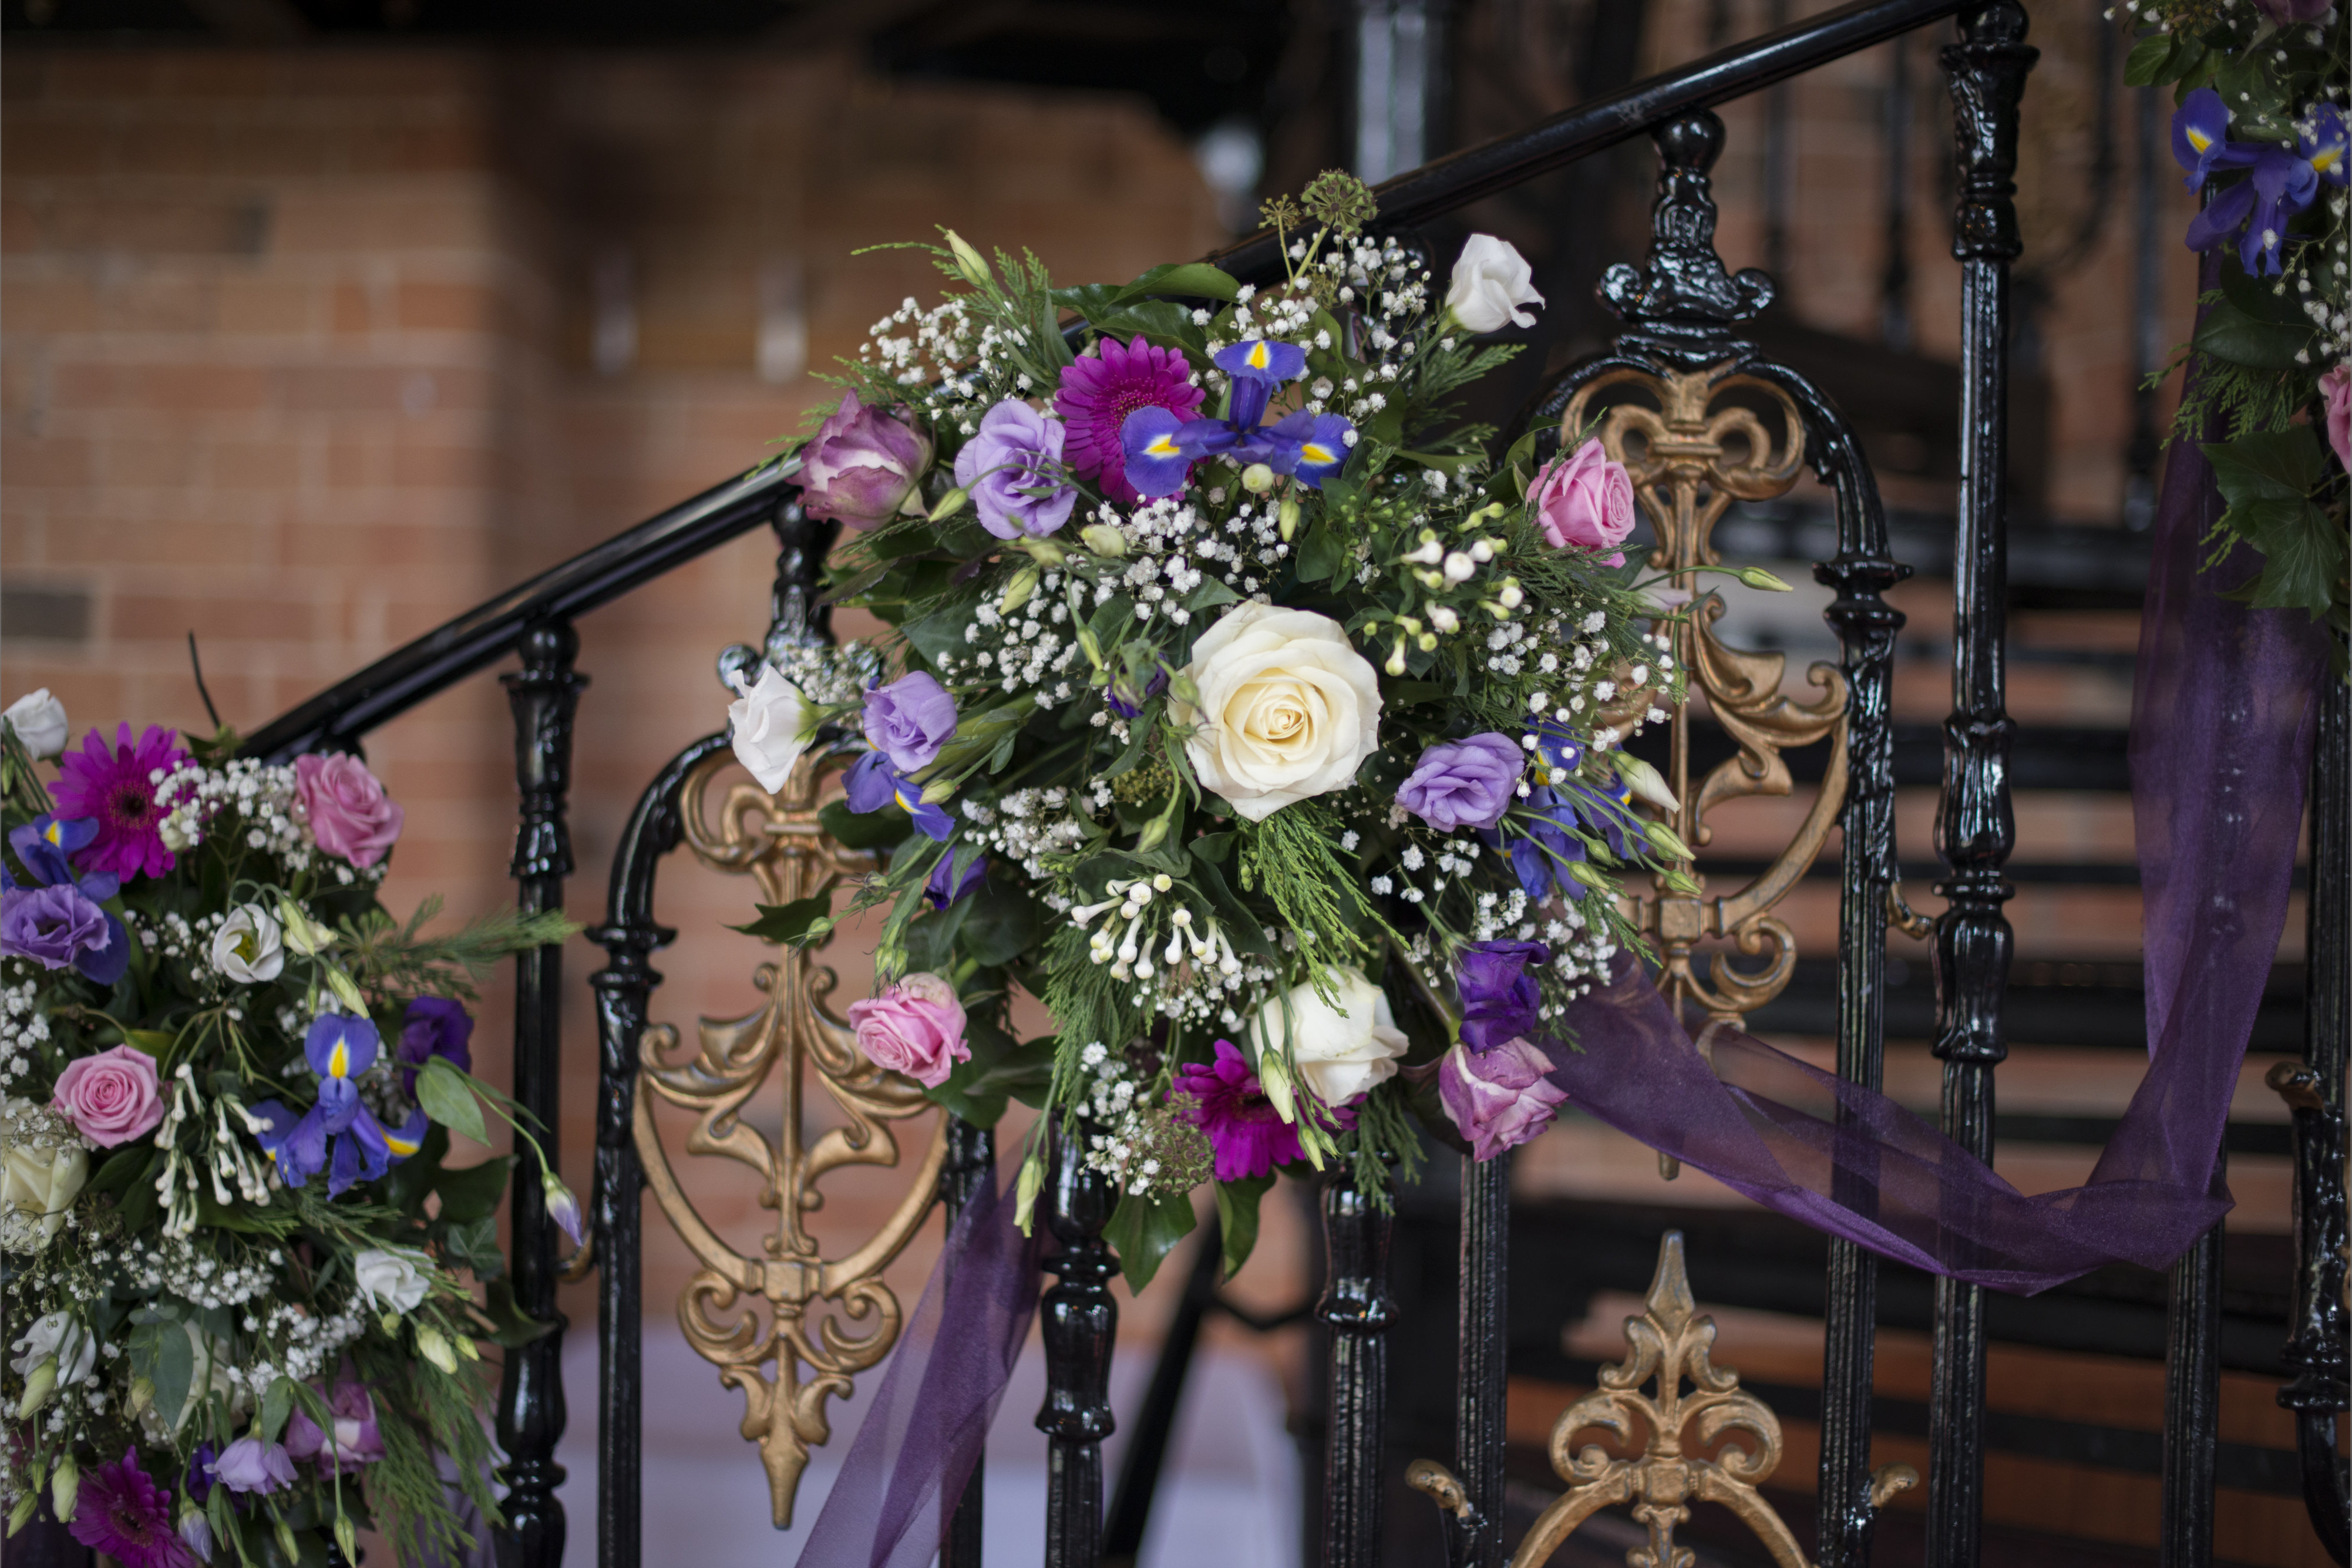 Real Wedding | Purple | Cultural | DIY | Manor House | Golf Club | Autumn | Kayleigh Pope Photography #Bridebook #RealWedding #WeddingIdeas #IngonManor Bridebook.co.uk